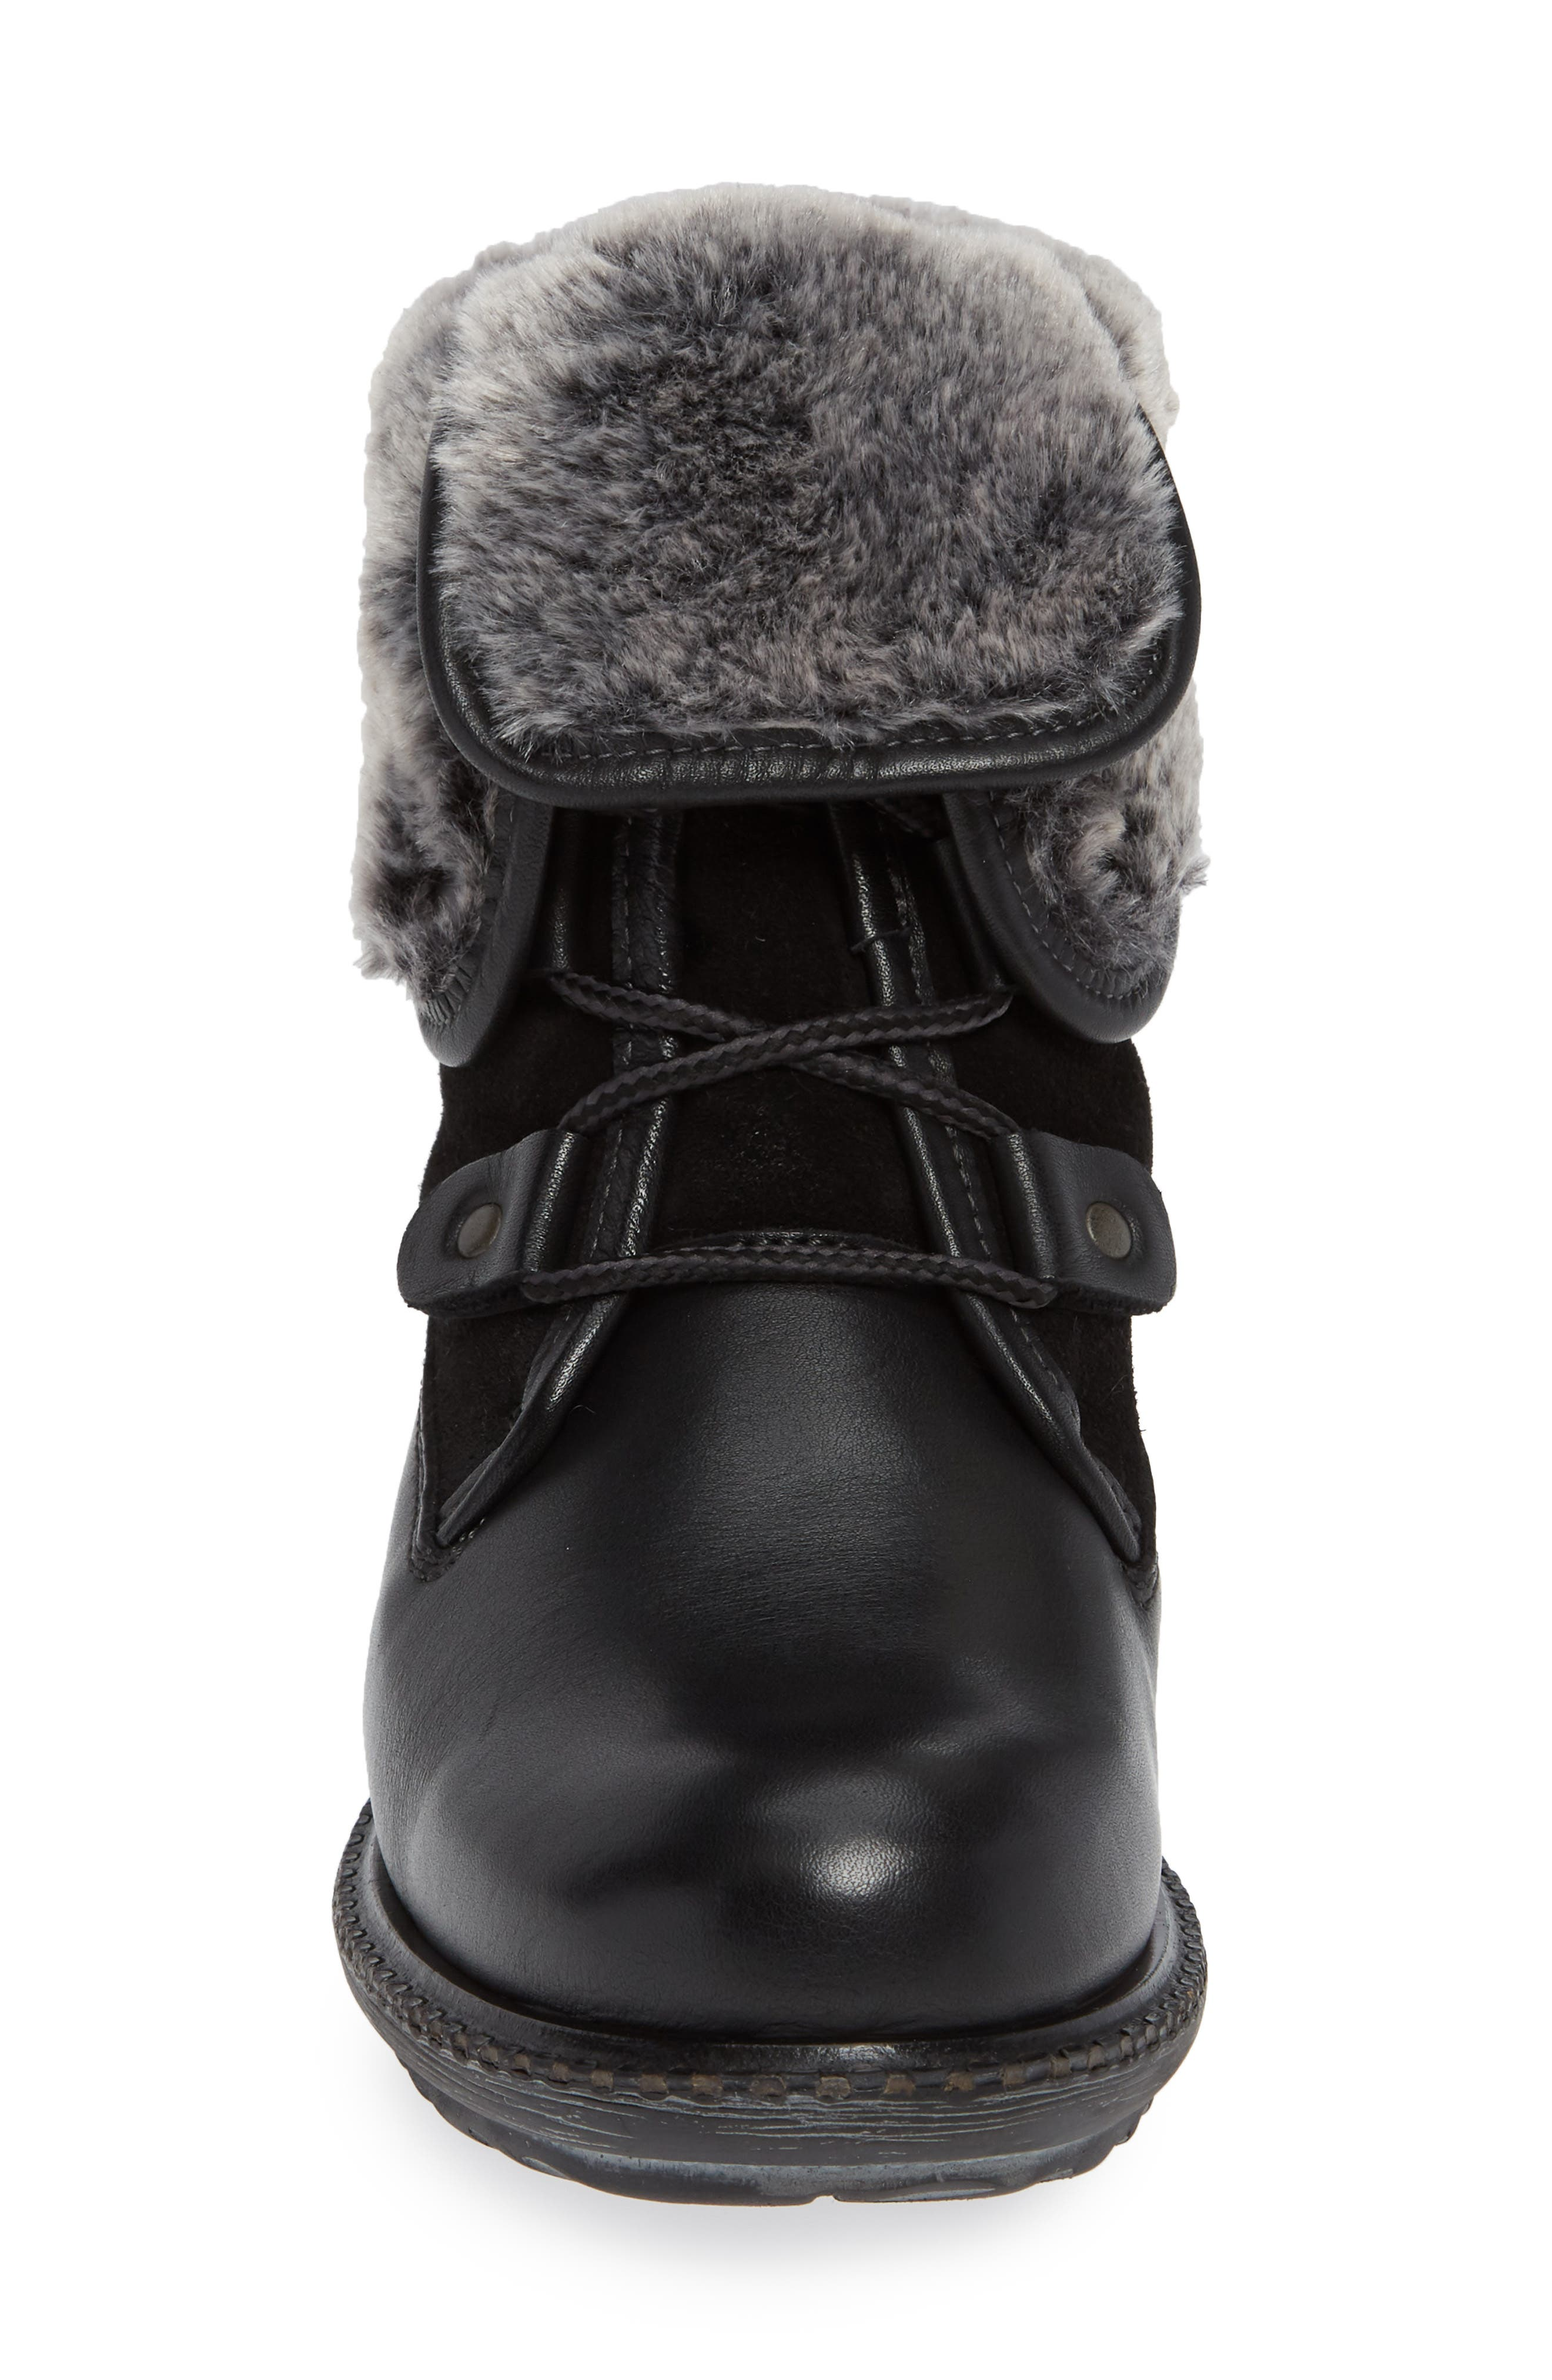 BOS. & CO., Springfield Waterproof Winter Boot, Alternate thumbnail 4, color, BLACK LEATHER